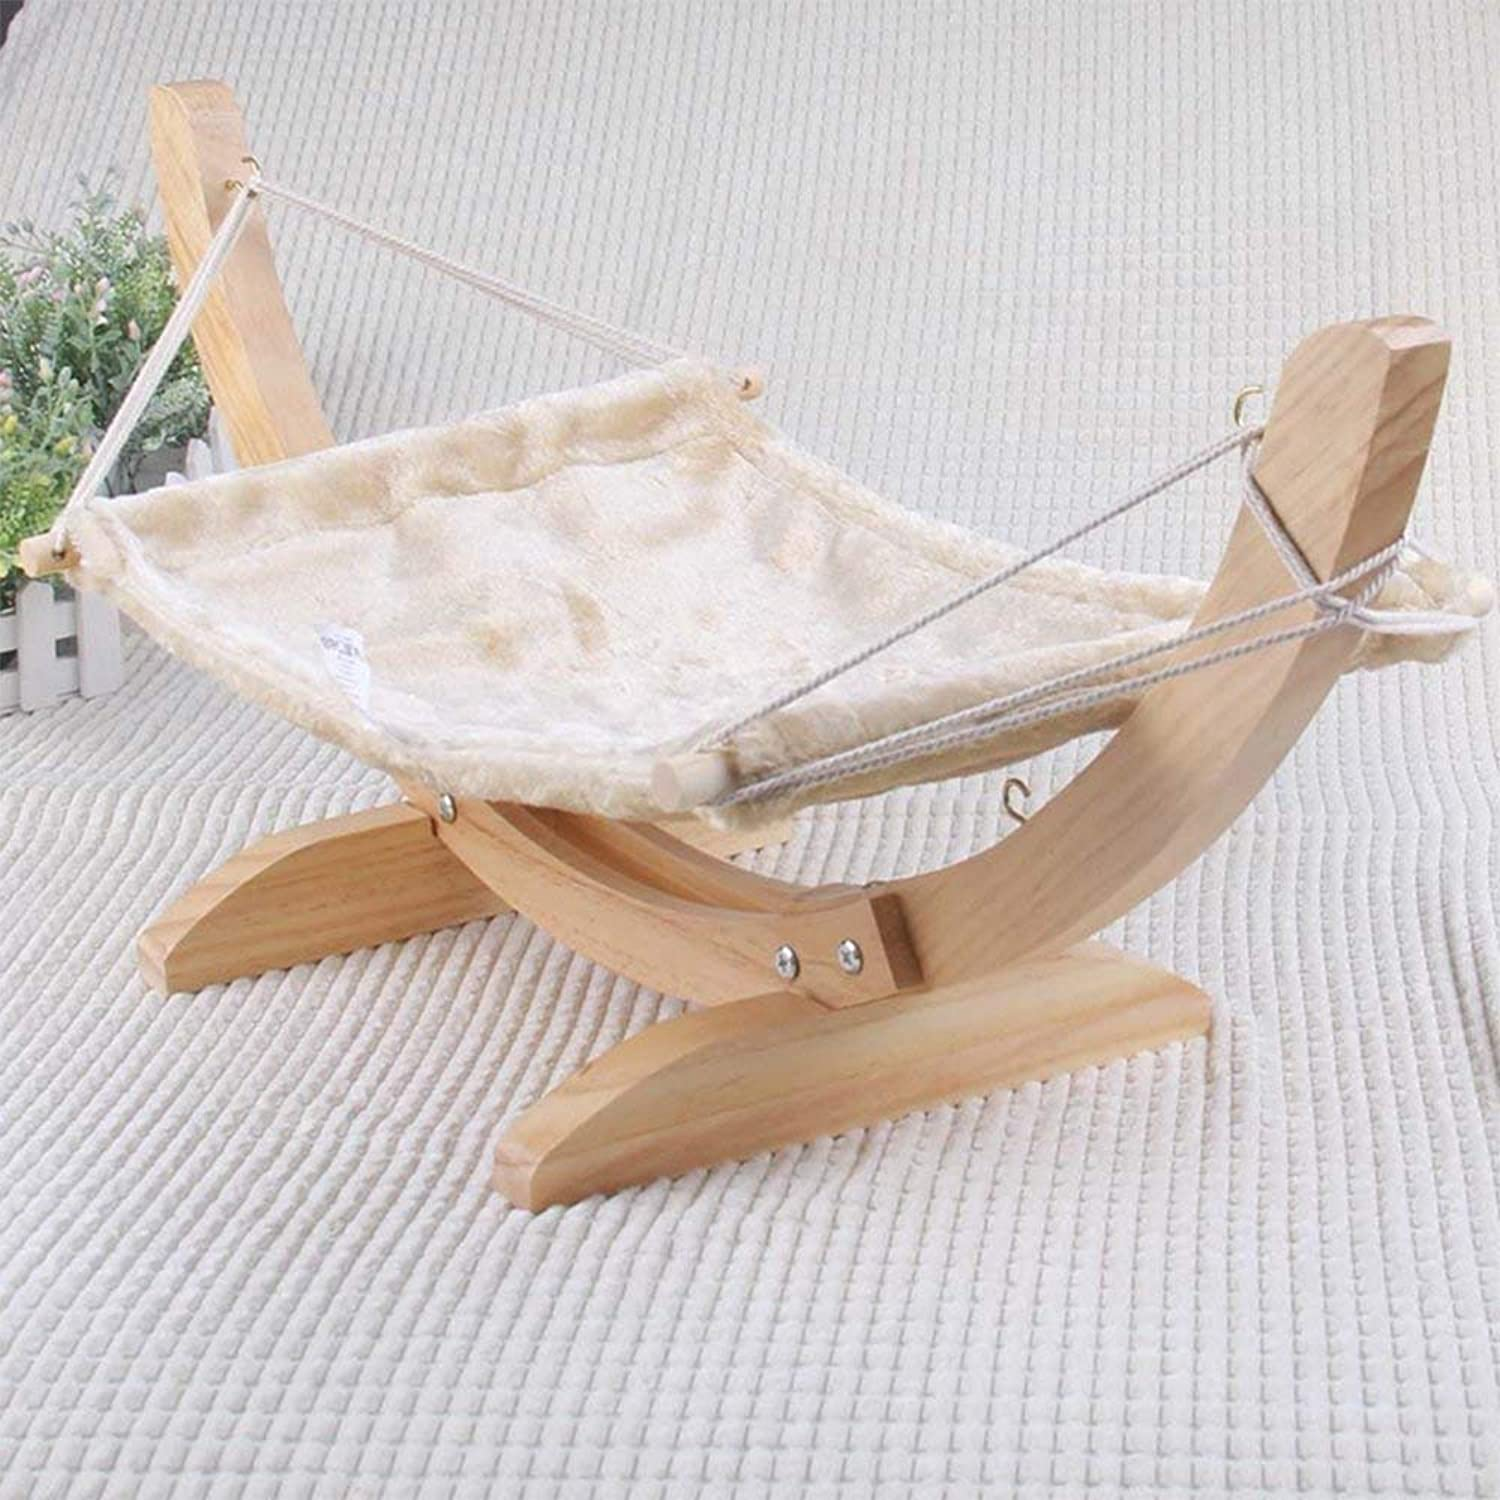 Pet Hammock Cat Bed Wooden Hammock Hanging Cat Cradle Cat Sofa Pet Furniture Sleeping Bag Removable and Washable